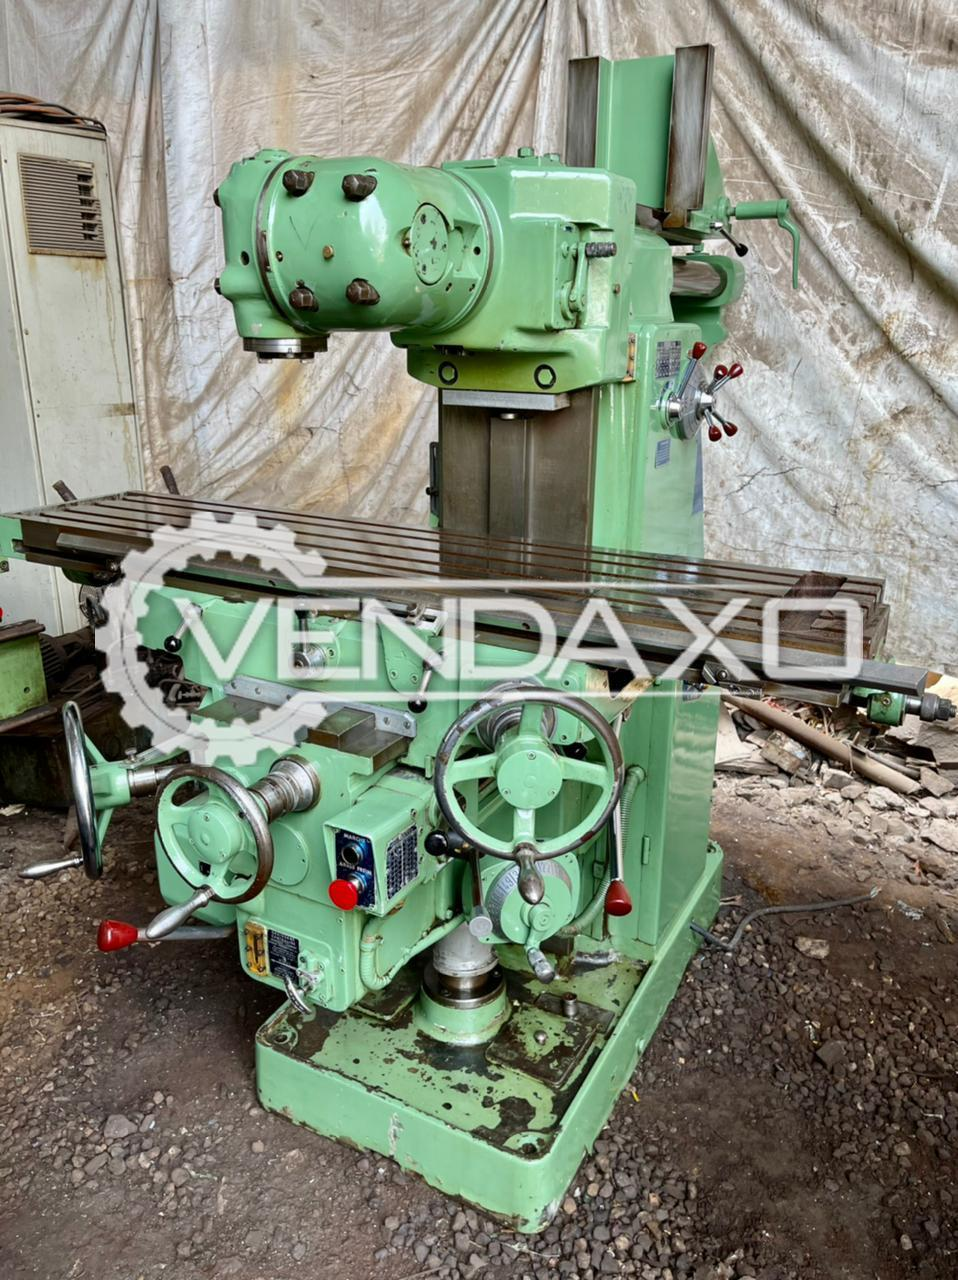 Dufour 222R Milling Machine - Table Size - 1300 x 300 mm